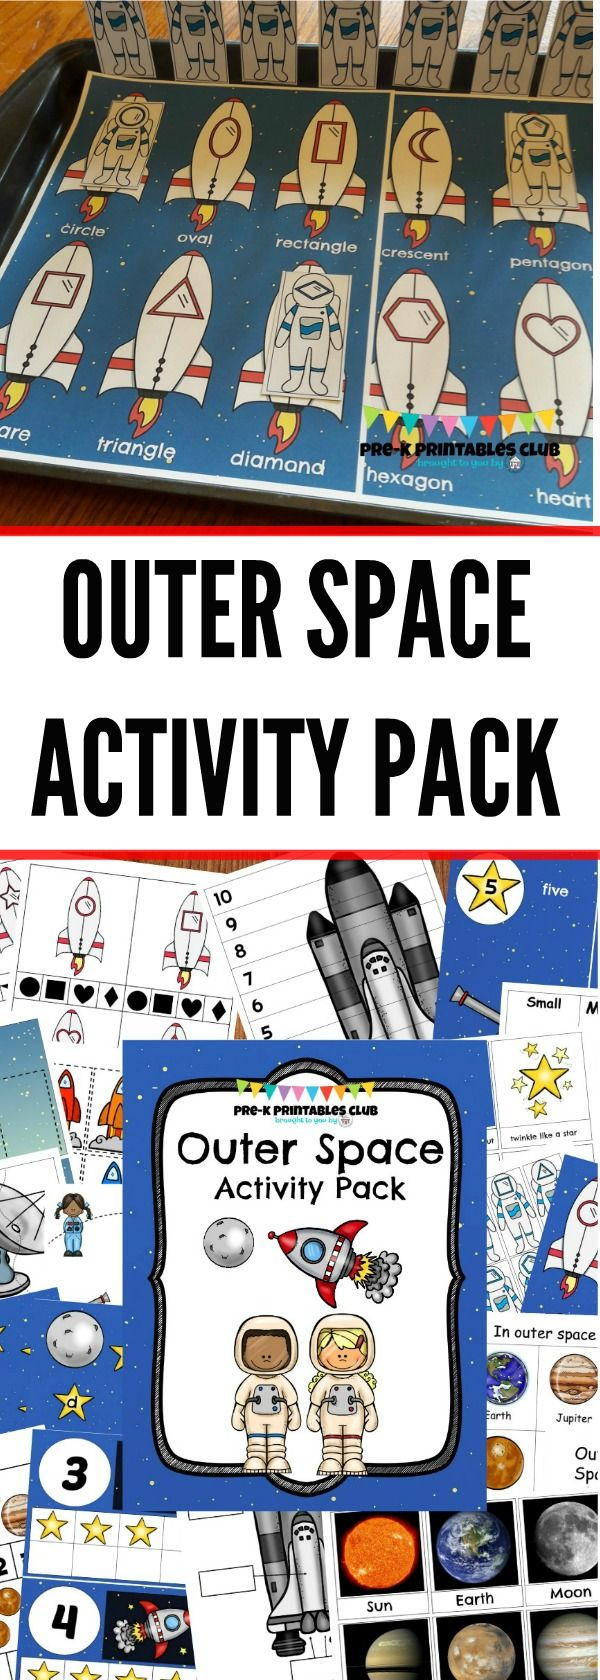 Outer Space Activity Pack Space Preschool Outer Space Activities Space Activities [ 1680 x 600 Pixel ]